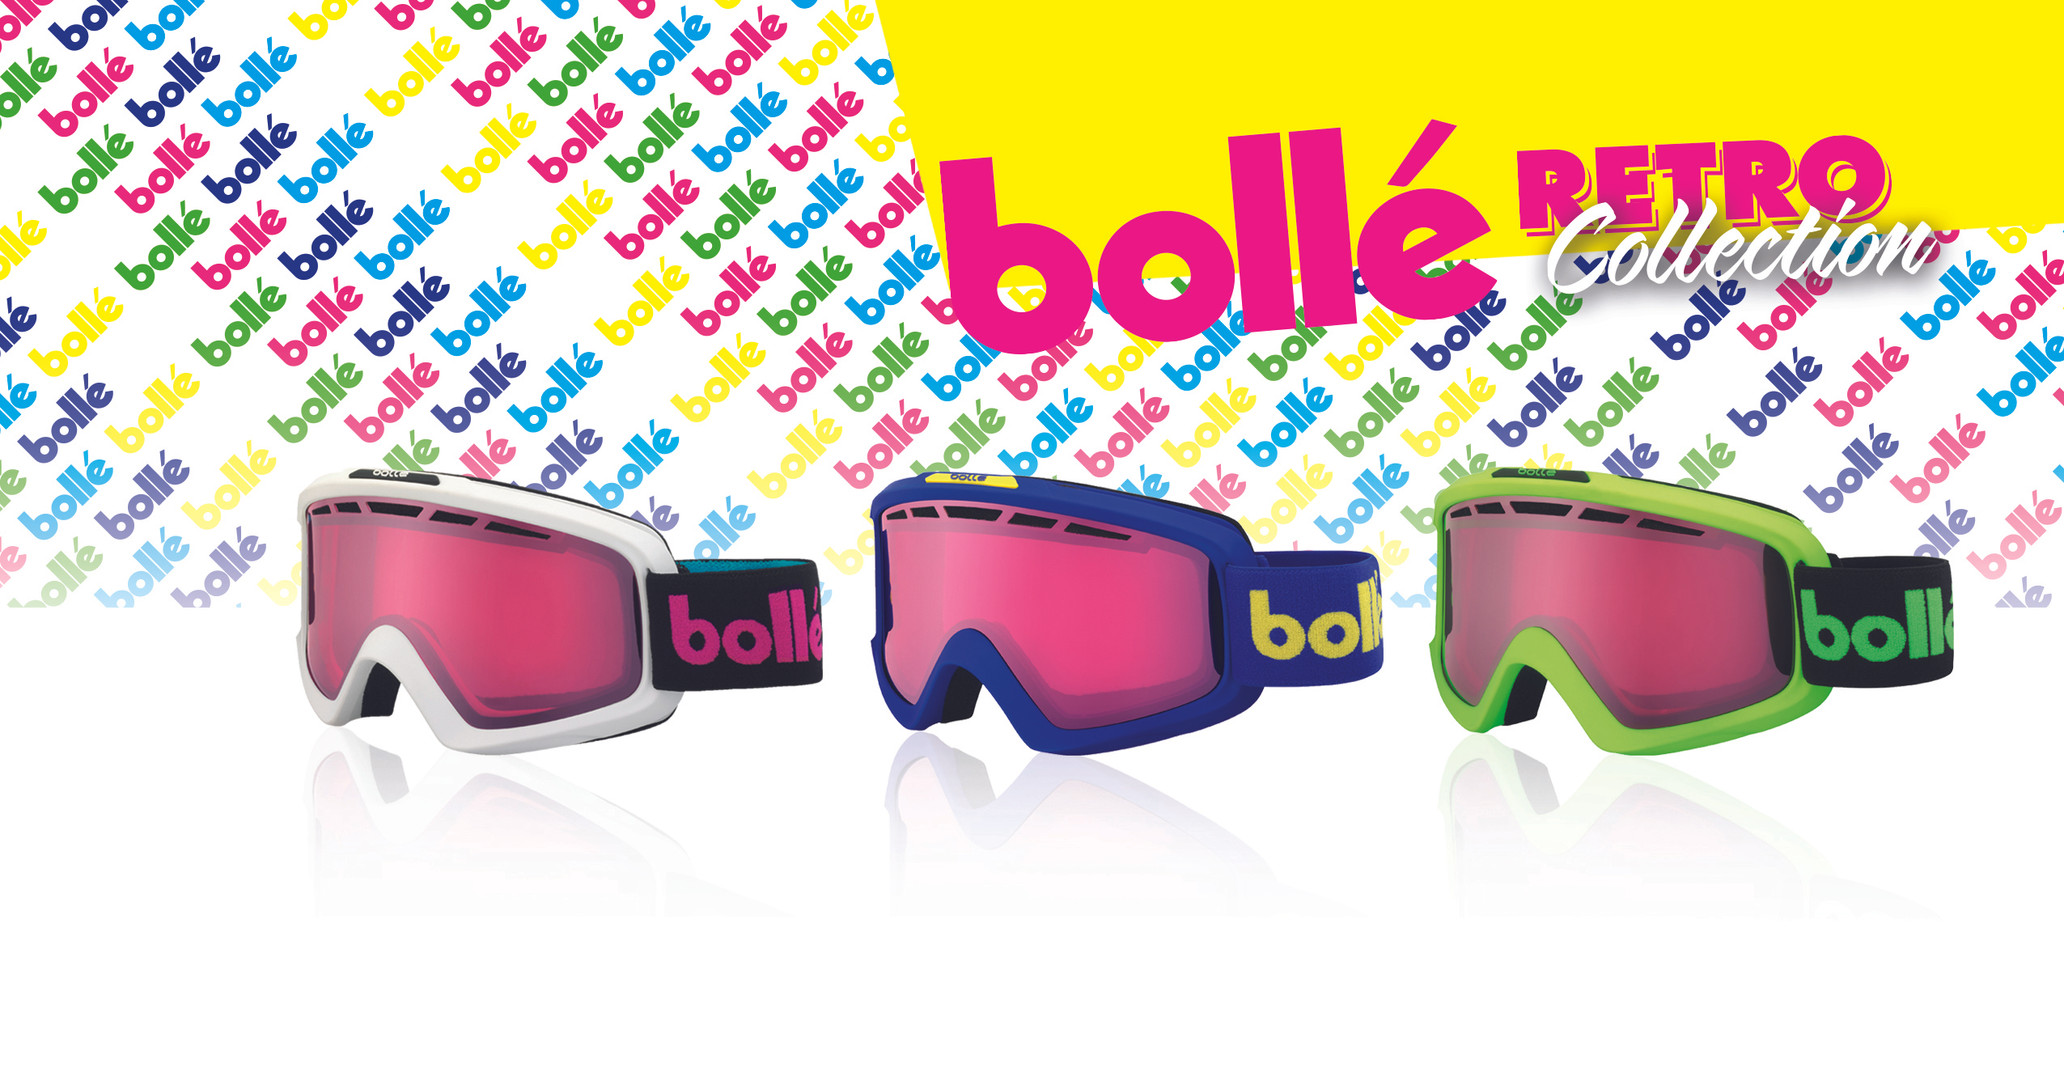 Bollé Retro Collection